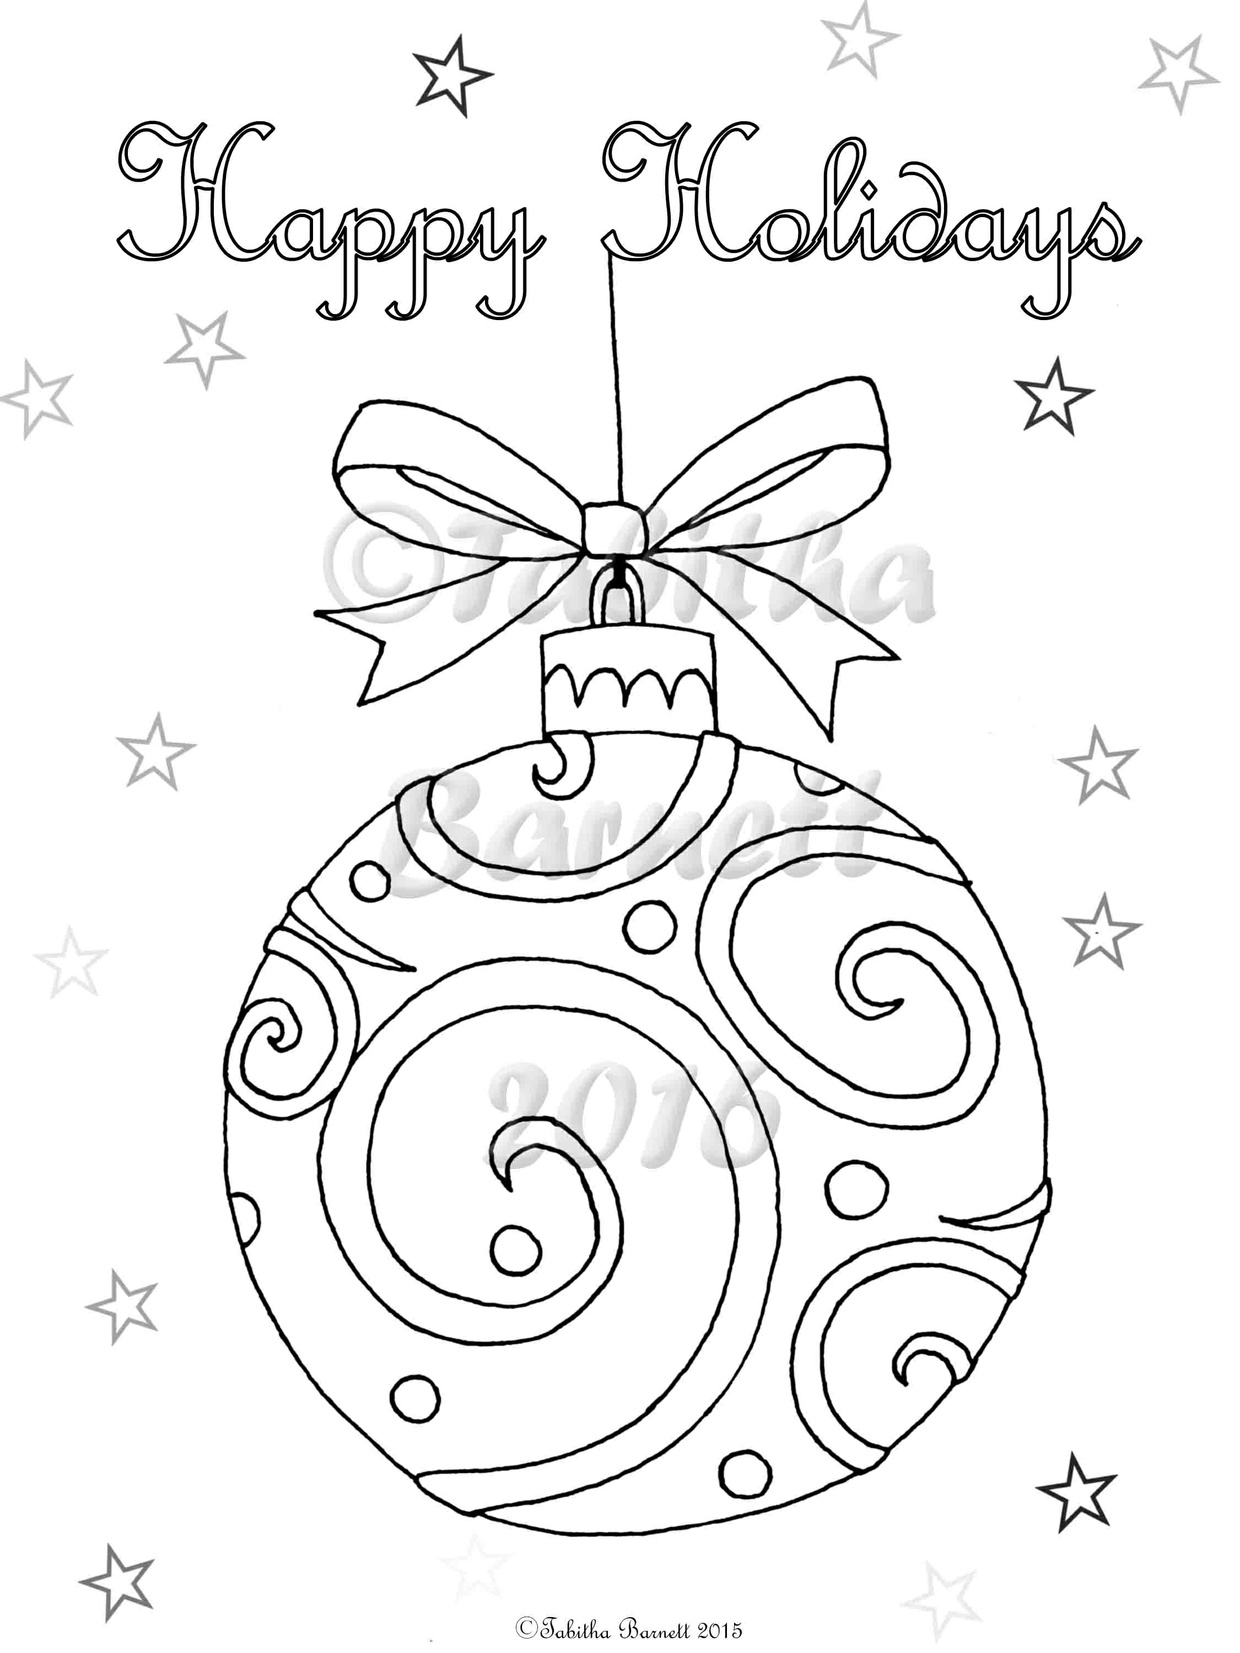 Merry Christmas Coloring Pages Pdf Tabby S Tangled Art Merry Coloring Pages Pdf